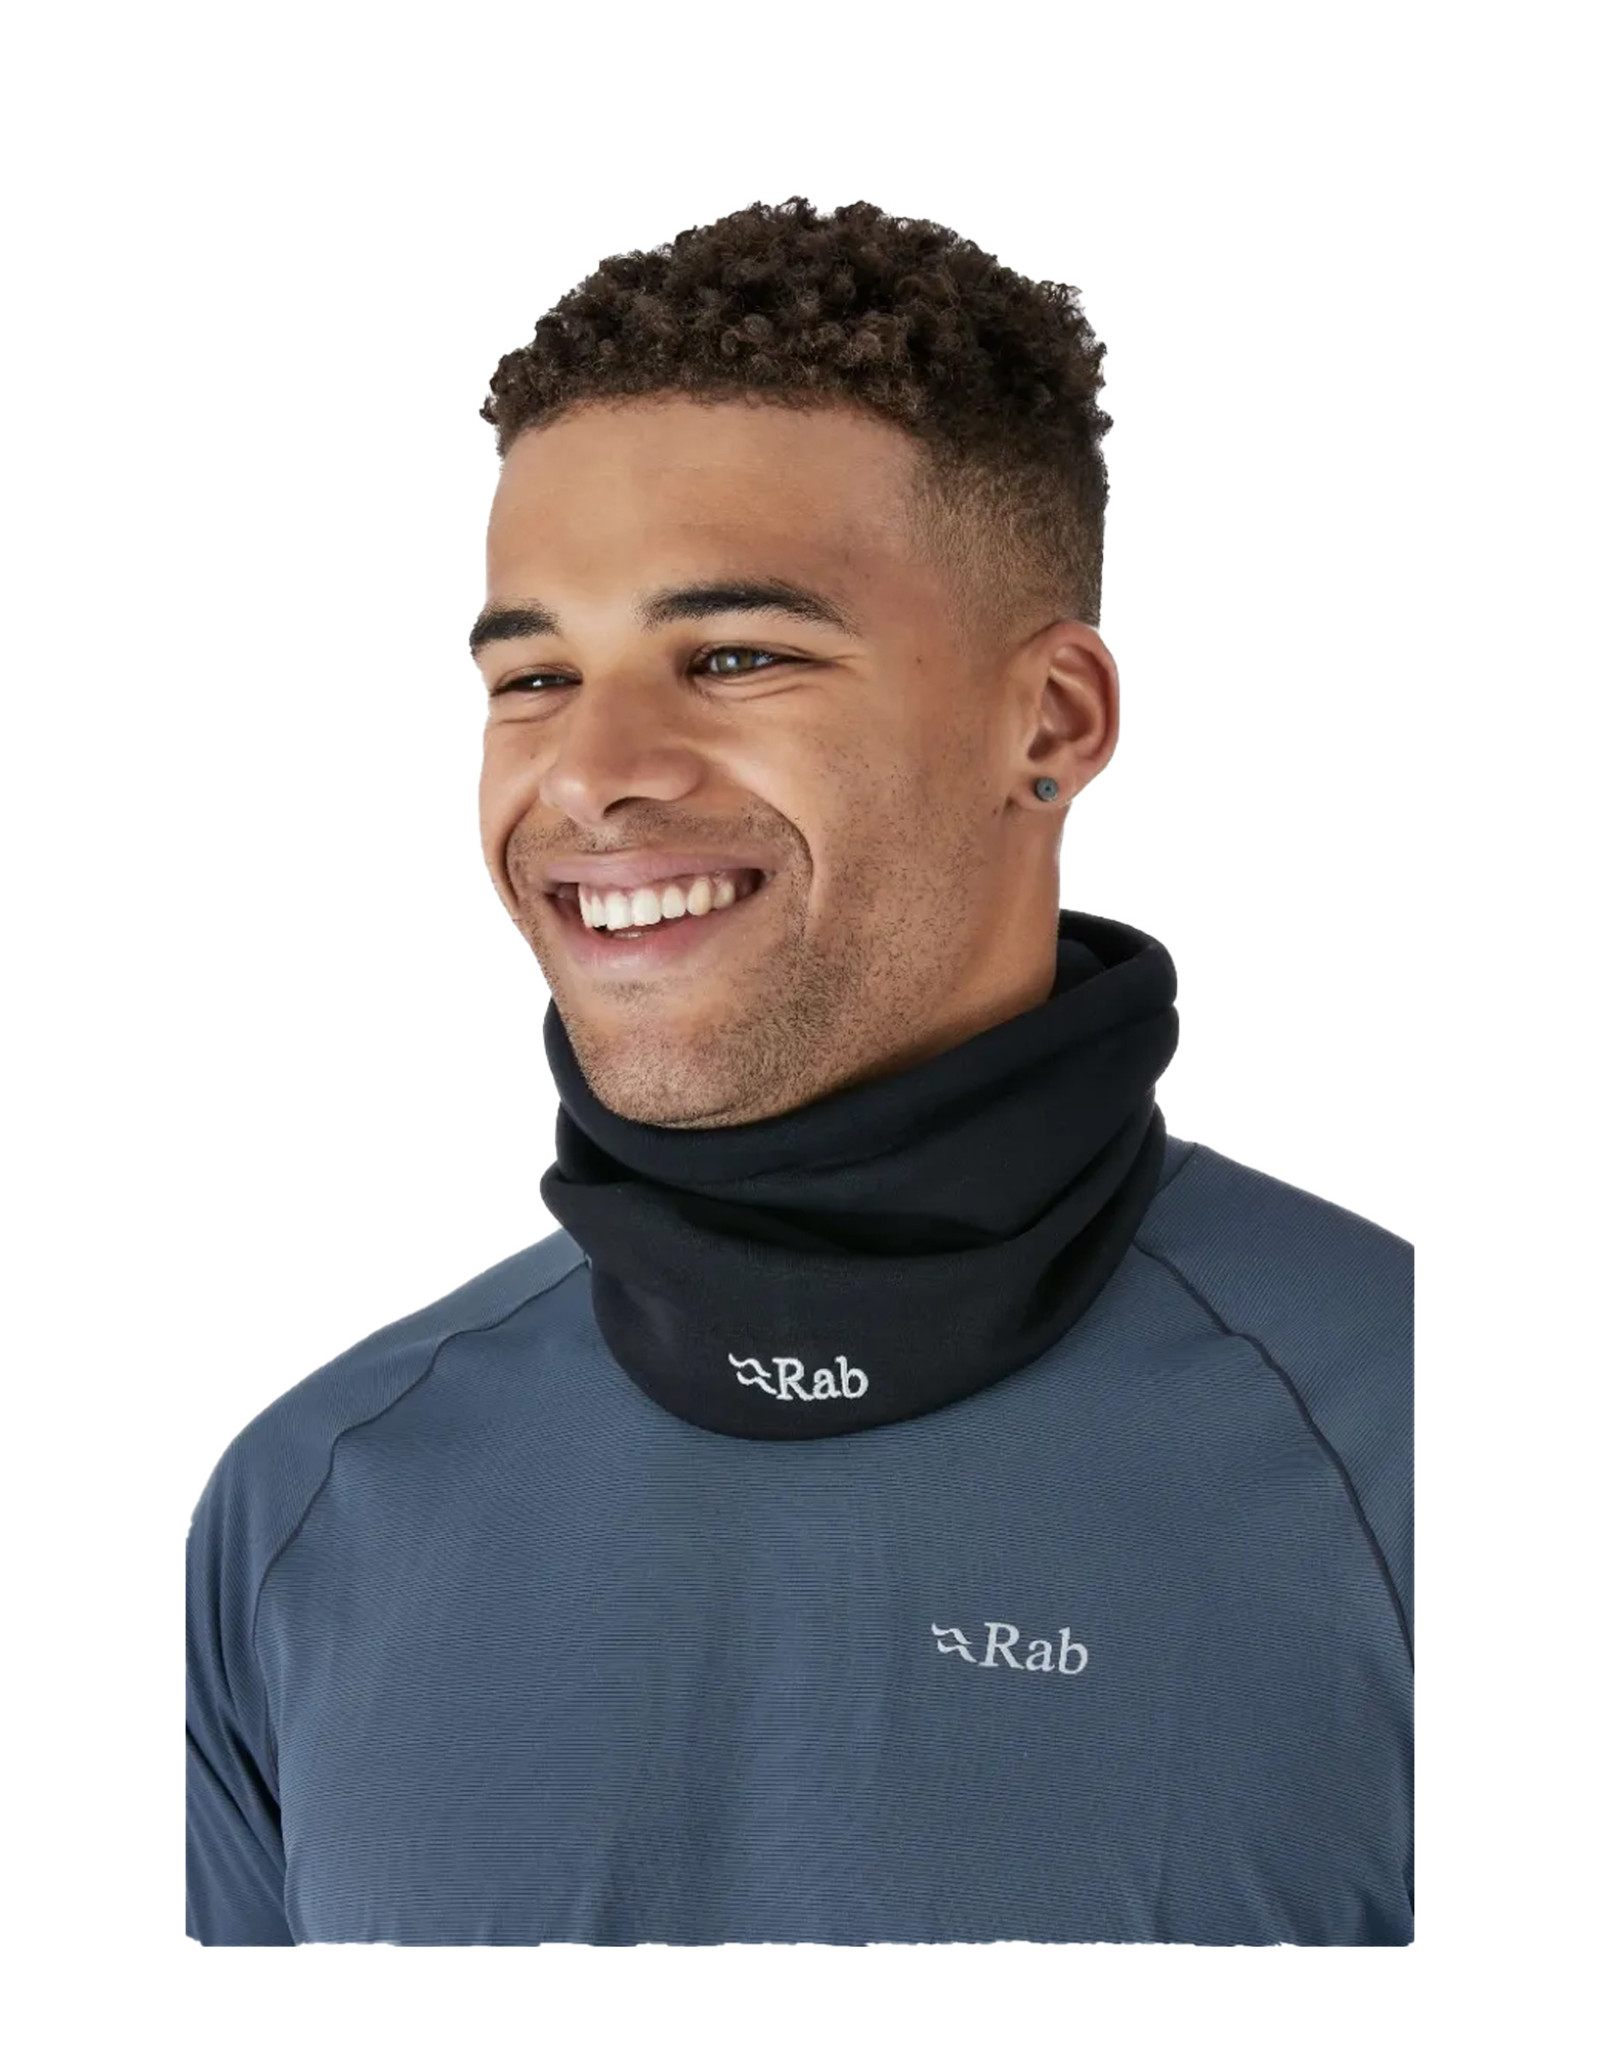 rab PS Neck Shield Rab- One Size